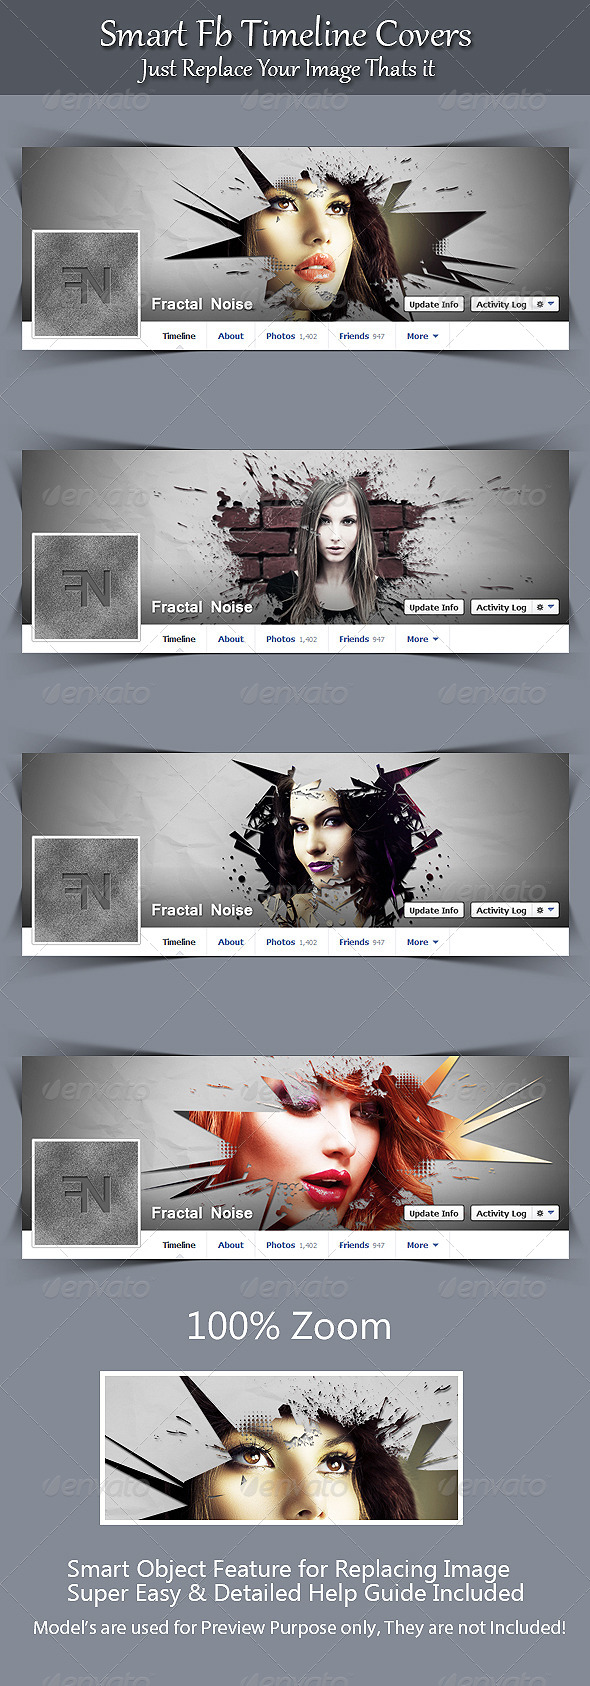 Smart Fb Timeline Covers